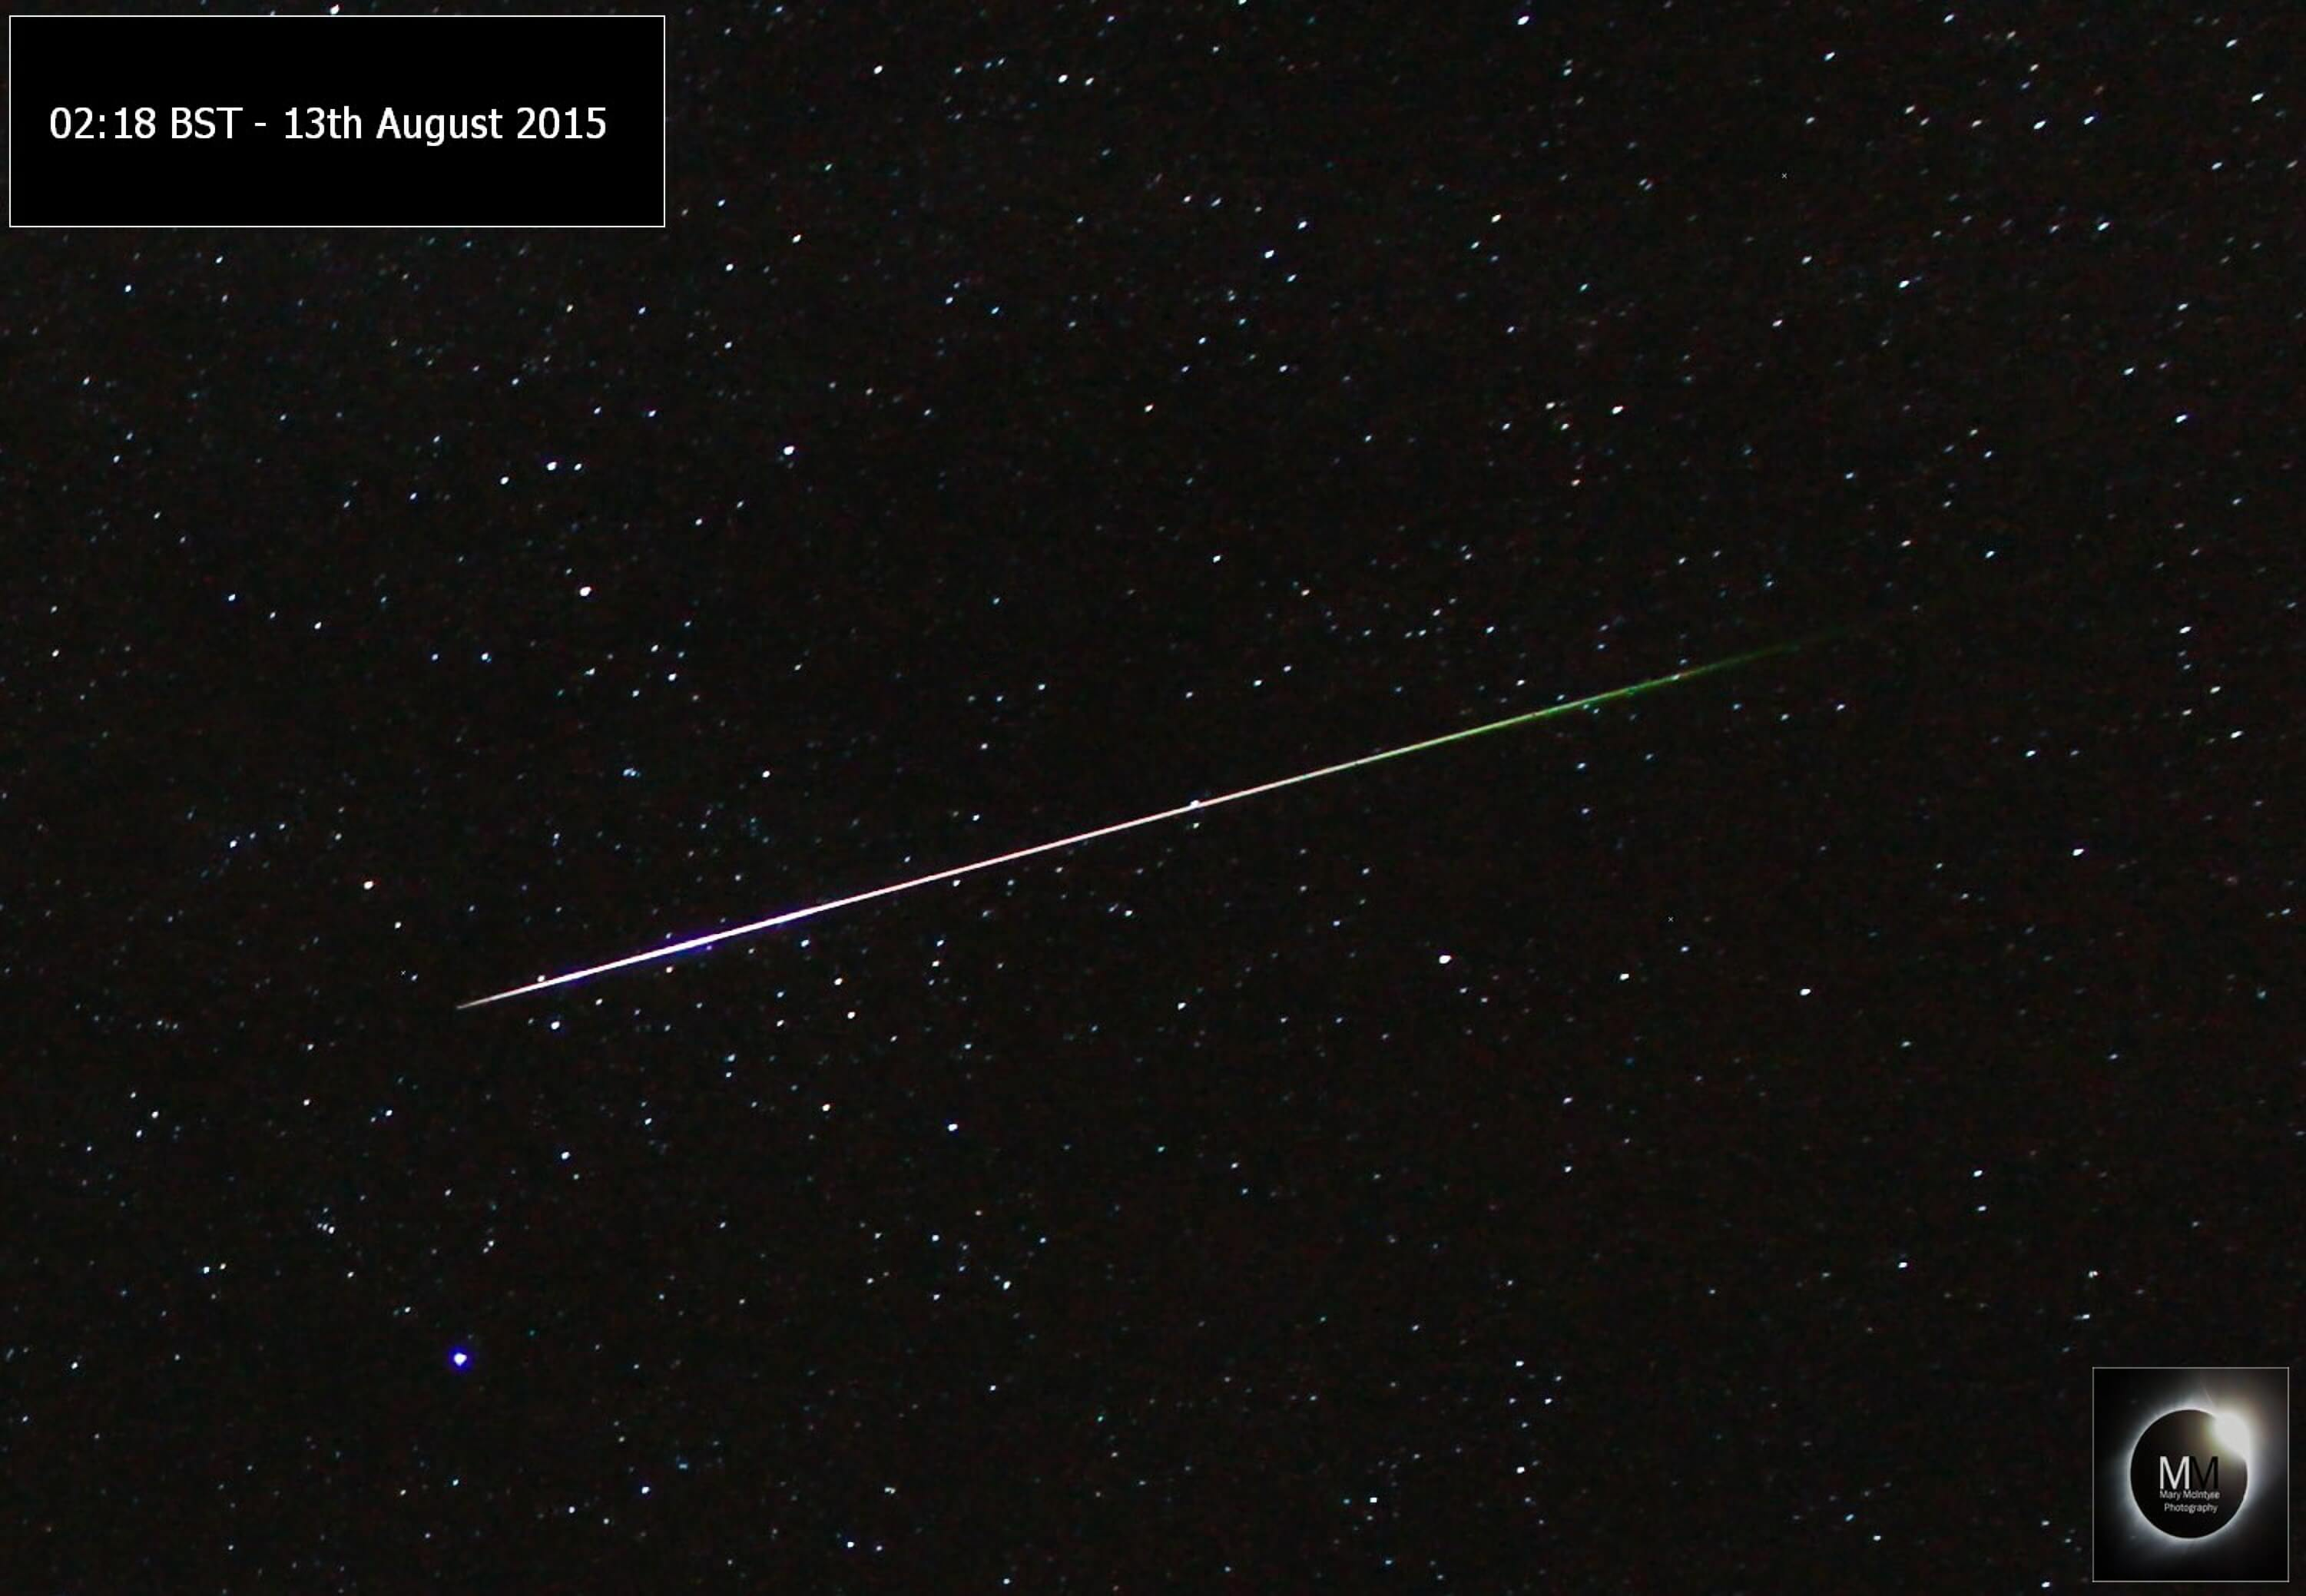 Perseid Meteor 02:18BST 13th August 2015 by Mary McIntyre